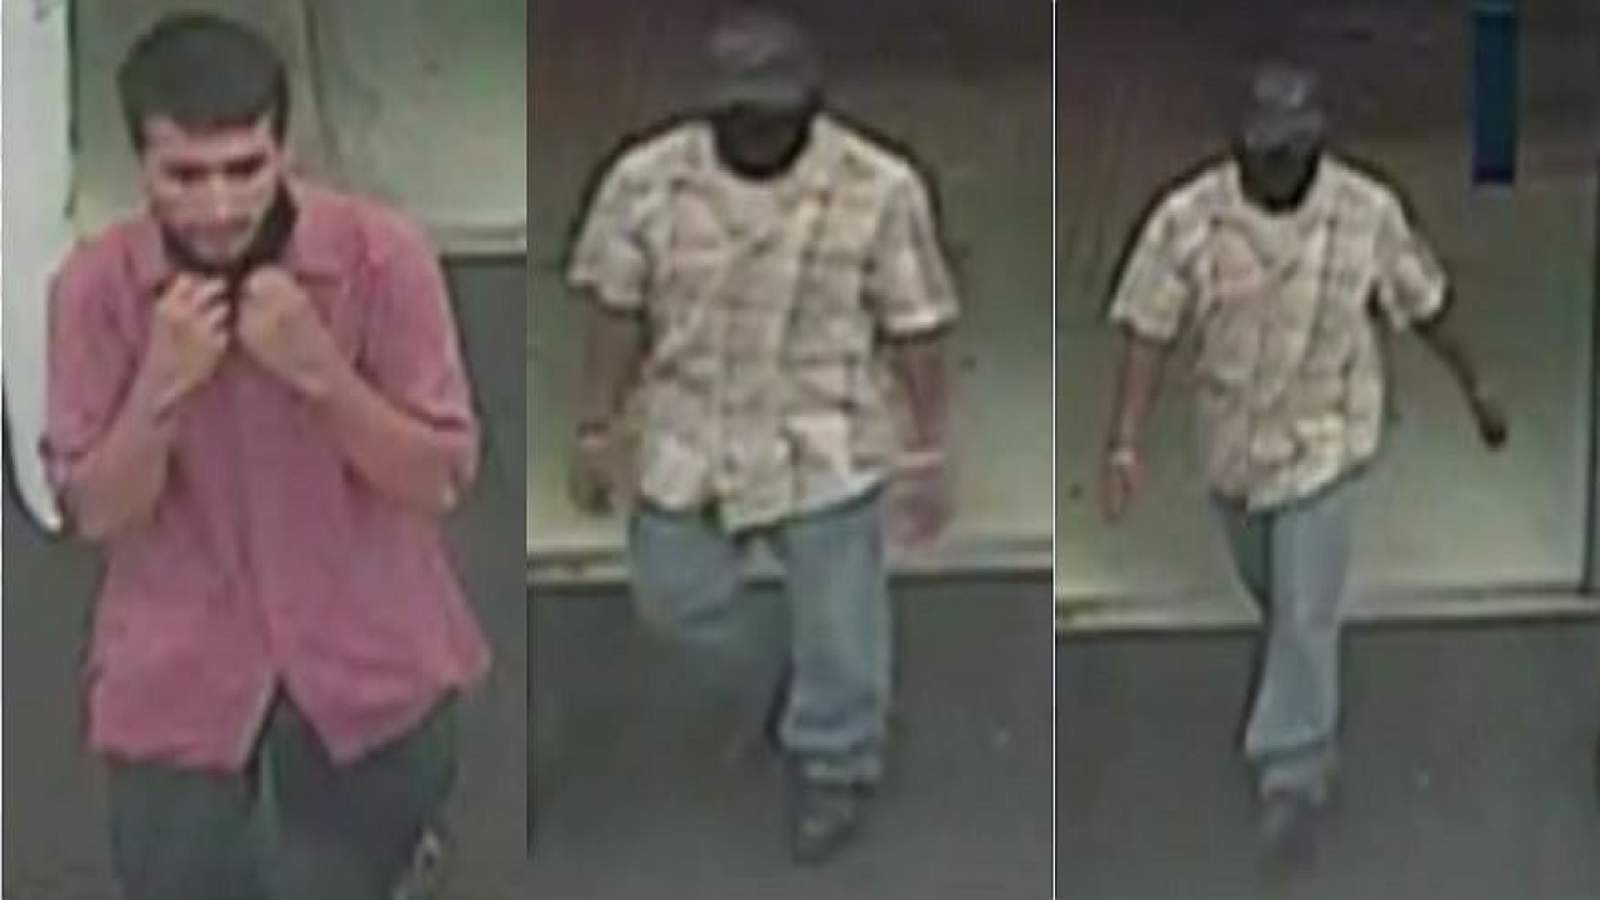 Men wielding knife rob CVS Pharmacy on North Side, police say